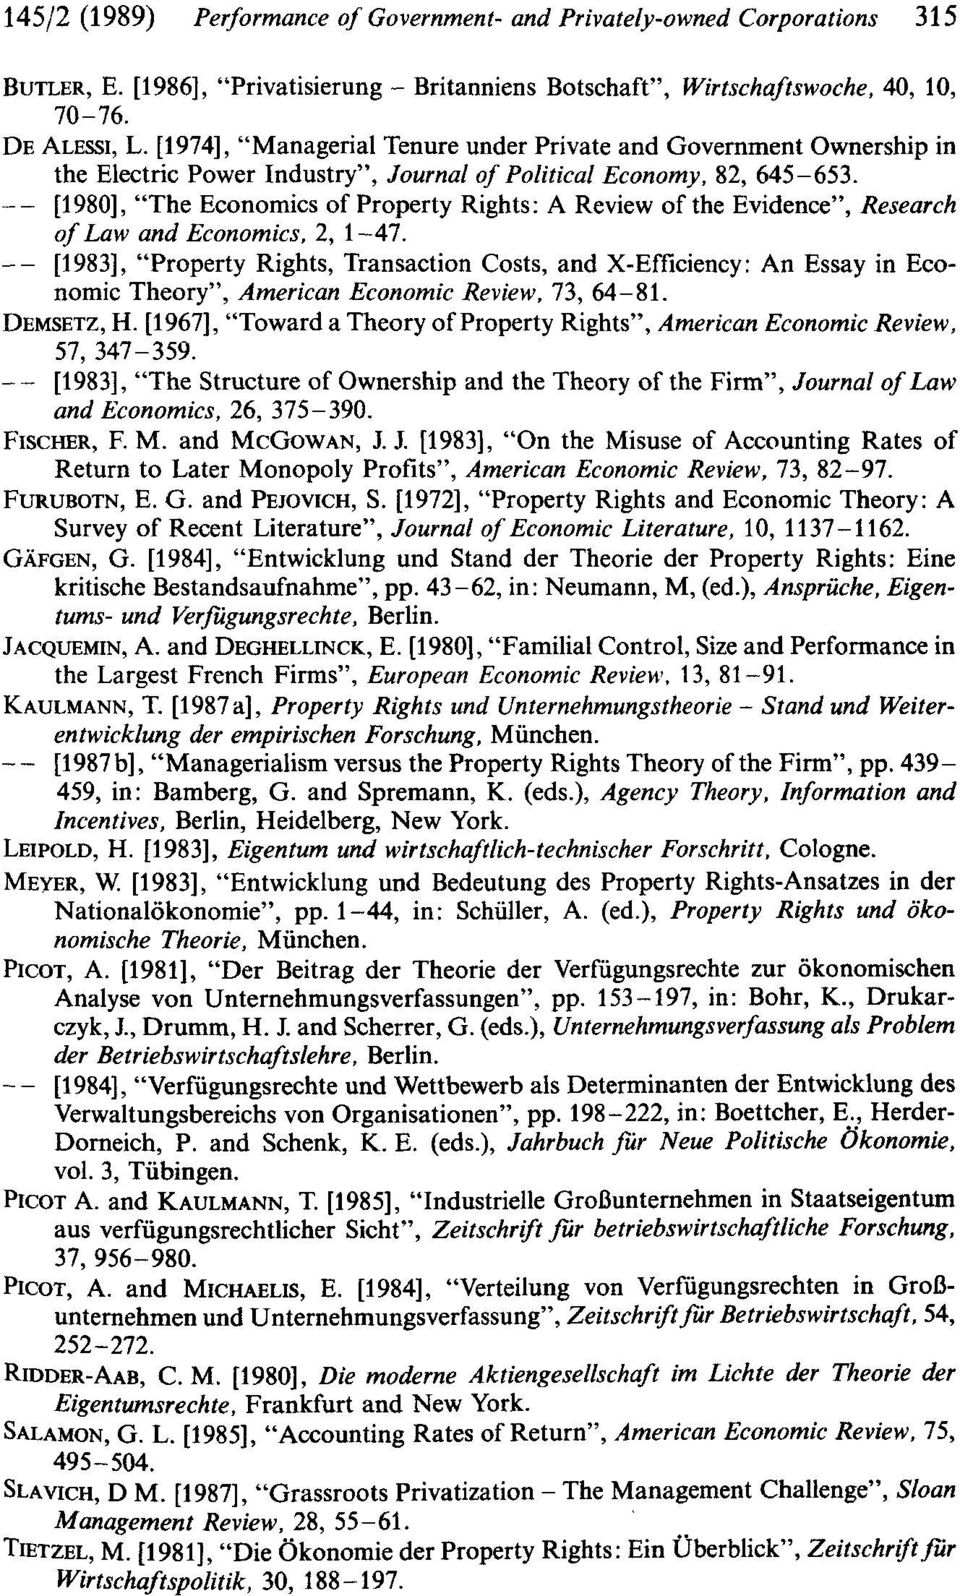 "[1980], ""The Economics of Property Rights: A Review of the Evidence"", Research of Law and Economics, 2, 1-47."